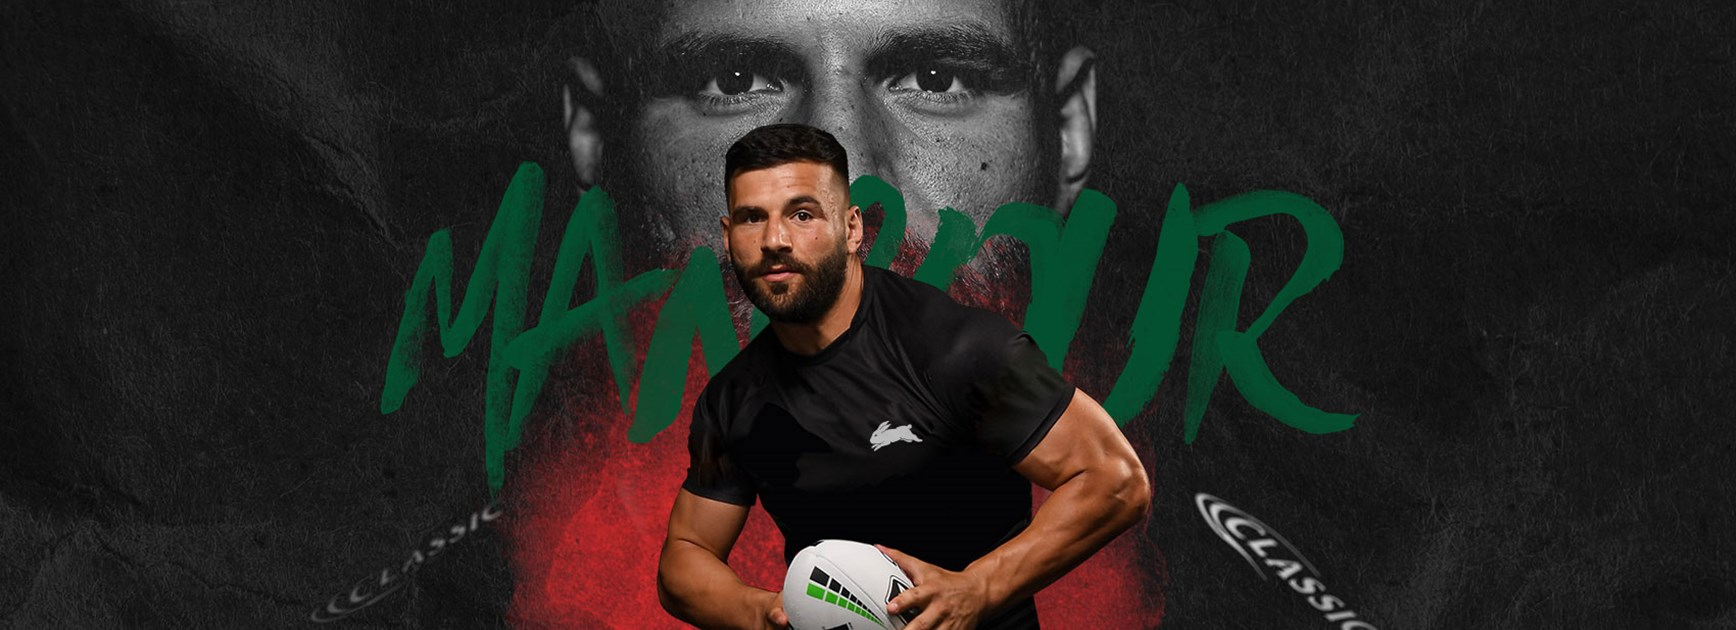 Rabbitohs sign international winger Josh Mansour for seasons 2021 and 2022